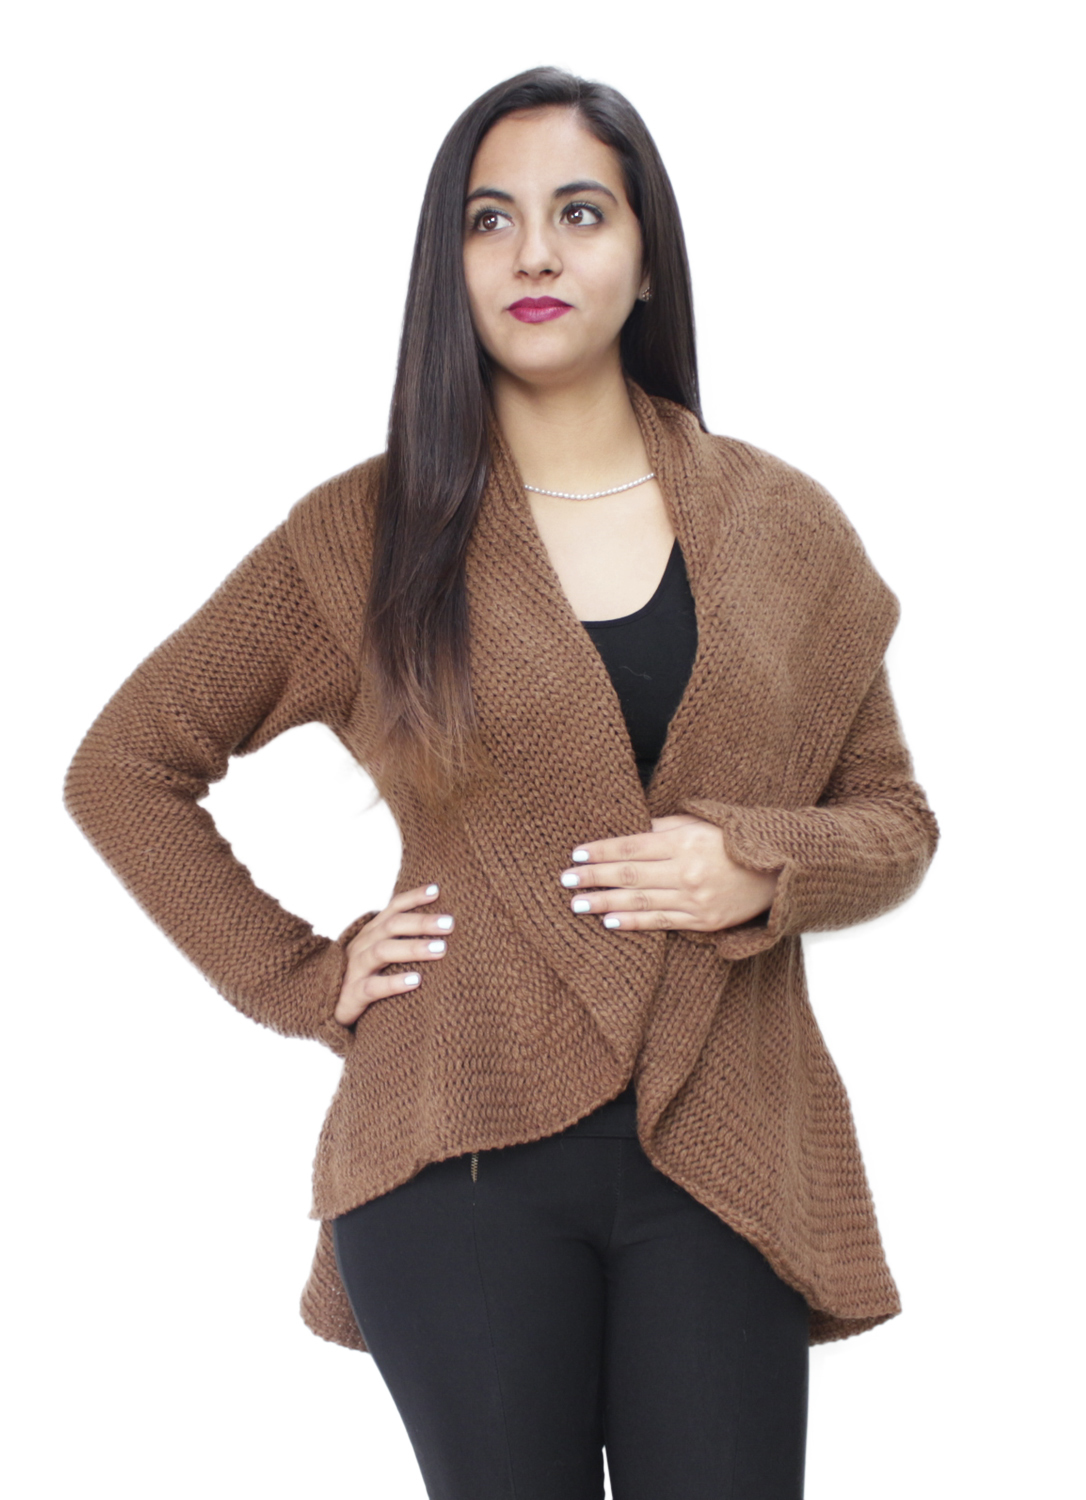 Women's pant suits aren't just for the White House. Find gorgeous women's pant suit sets in a variety of styles and colors at shopnow-ahoqsxpv.ga Slinky® Brand 2pc Waterfall Sweater Knit Jacket and Tank. Clearance. Slinky® Brand 2pc Waterfall Sweater Knit Jacket and Tank Pricing $